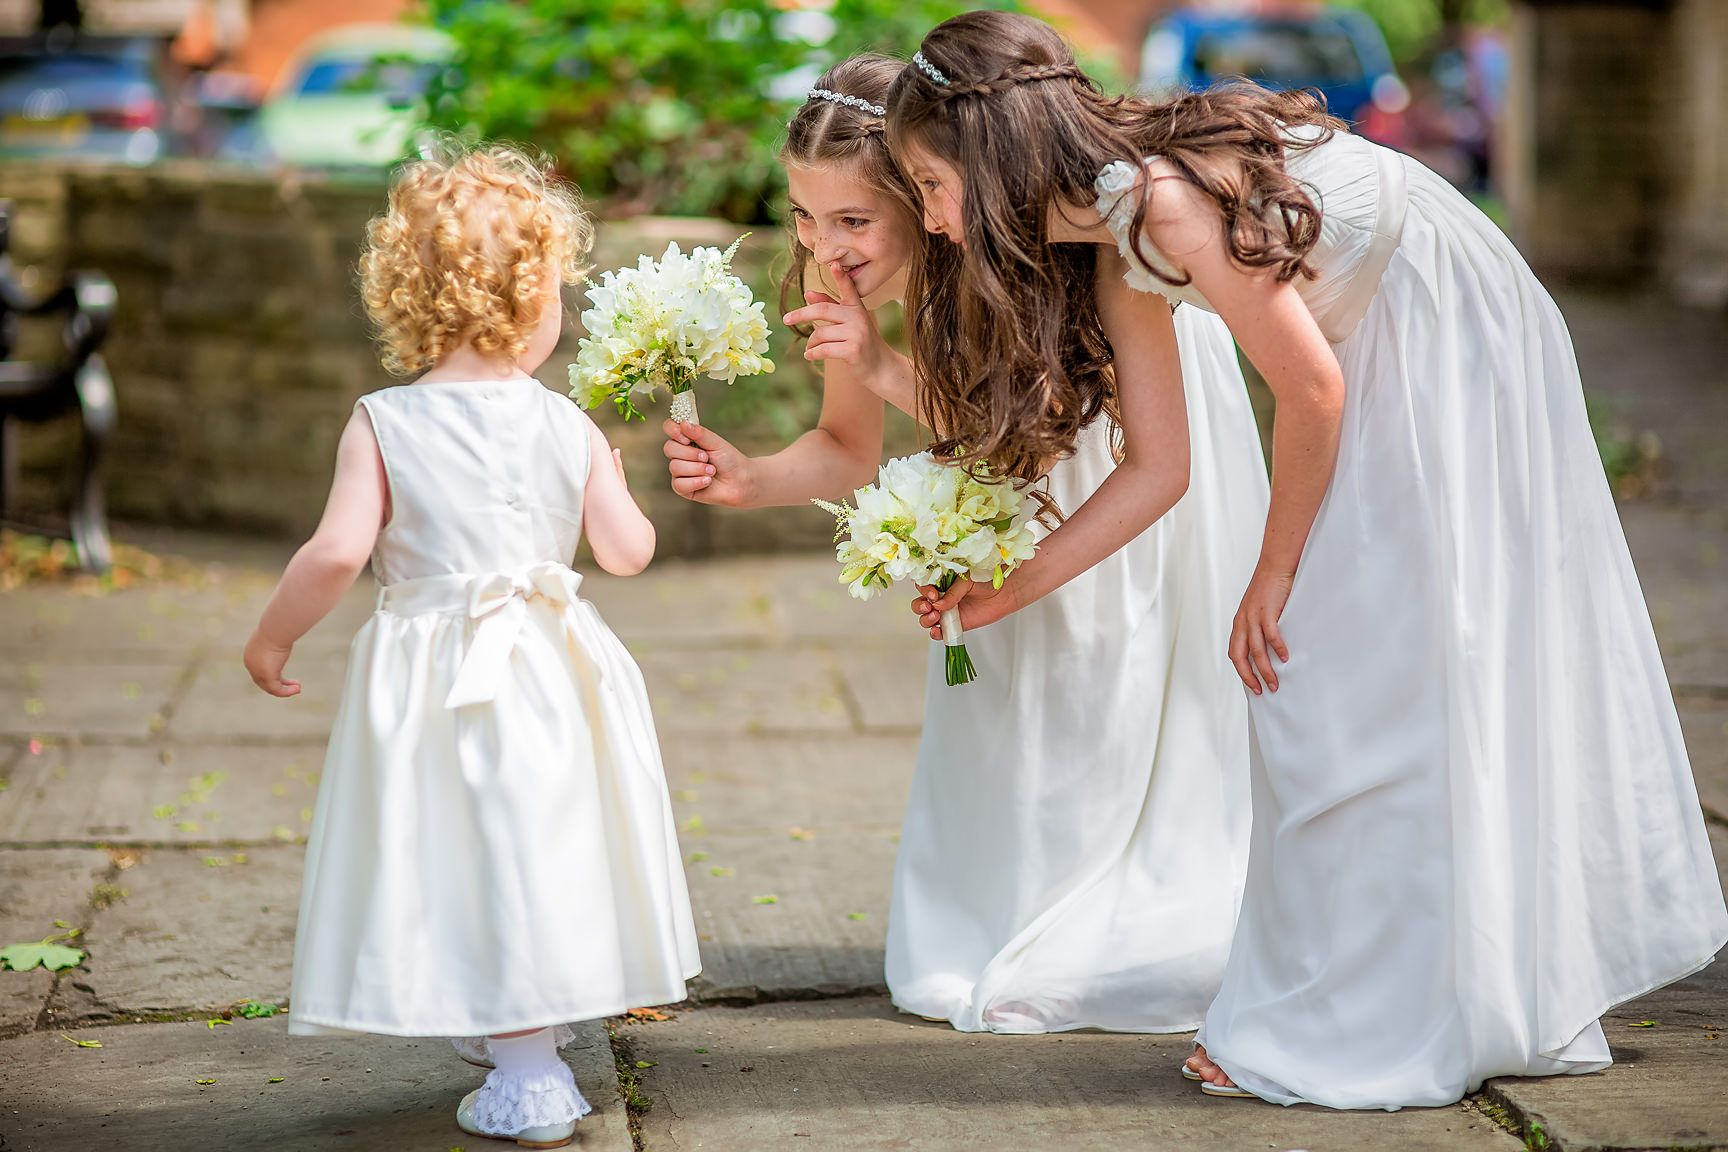 Tiny toddler bridesmaid is greeted by two young bridesmaids all dressed in white outside church